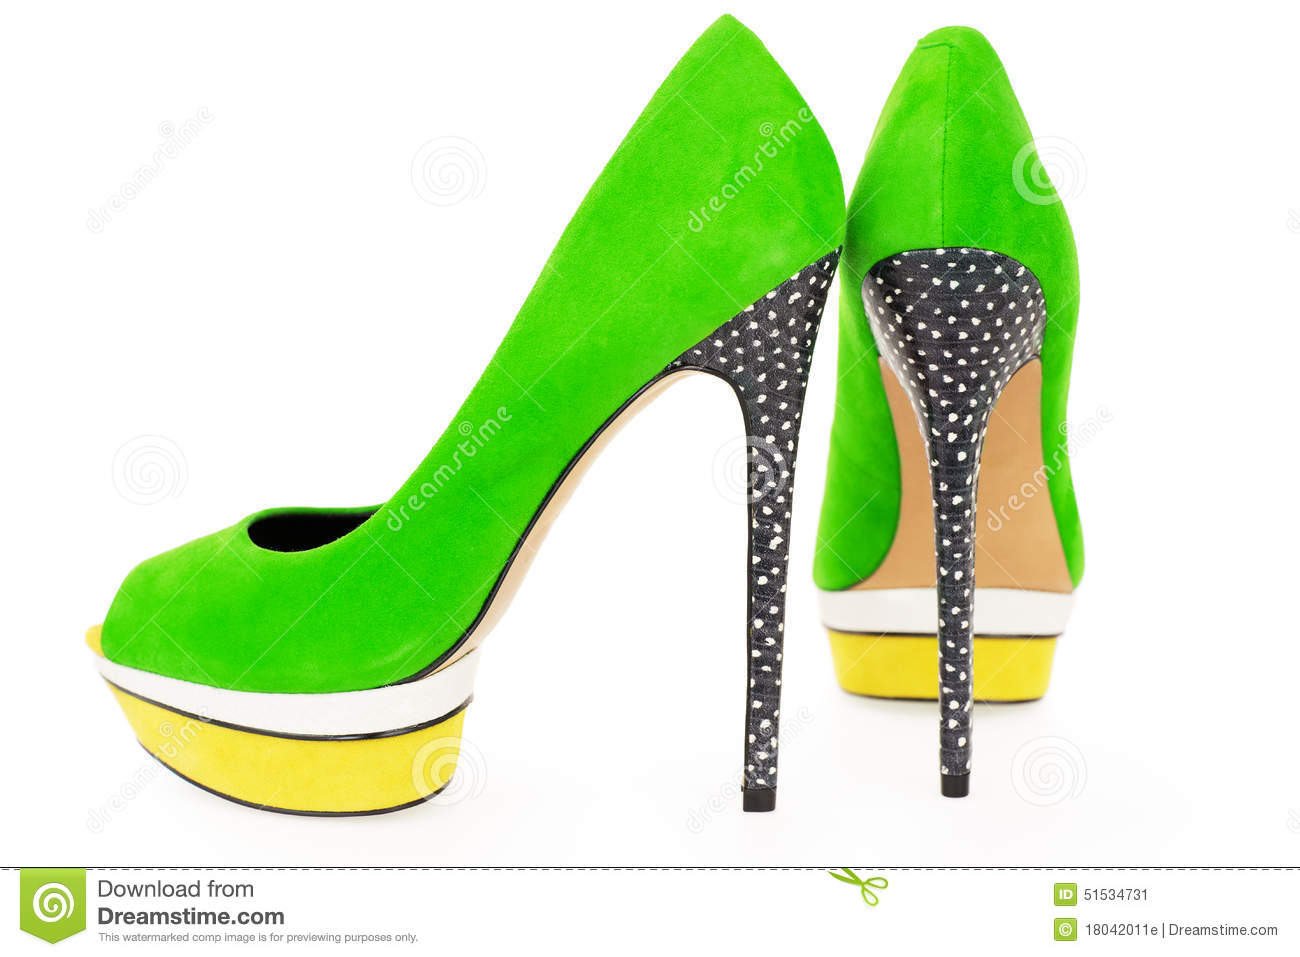 pare of bright green and yellow high heel shoes on whit